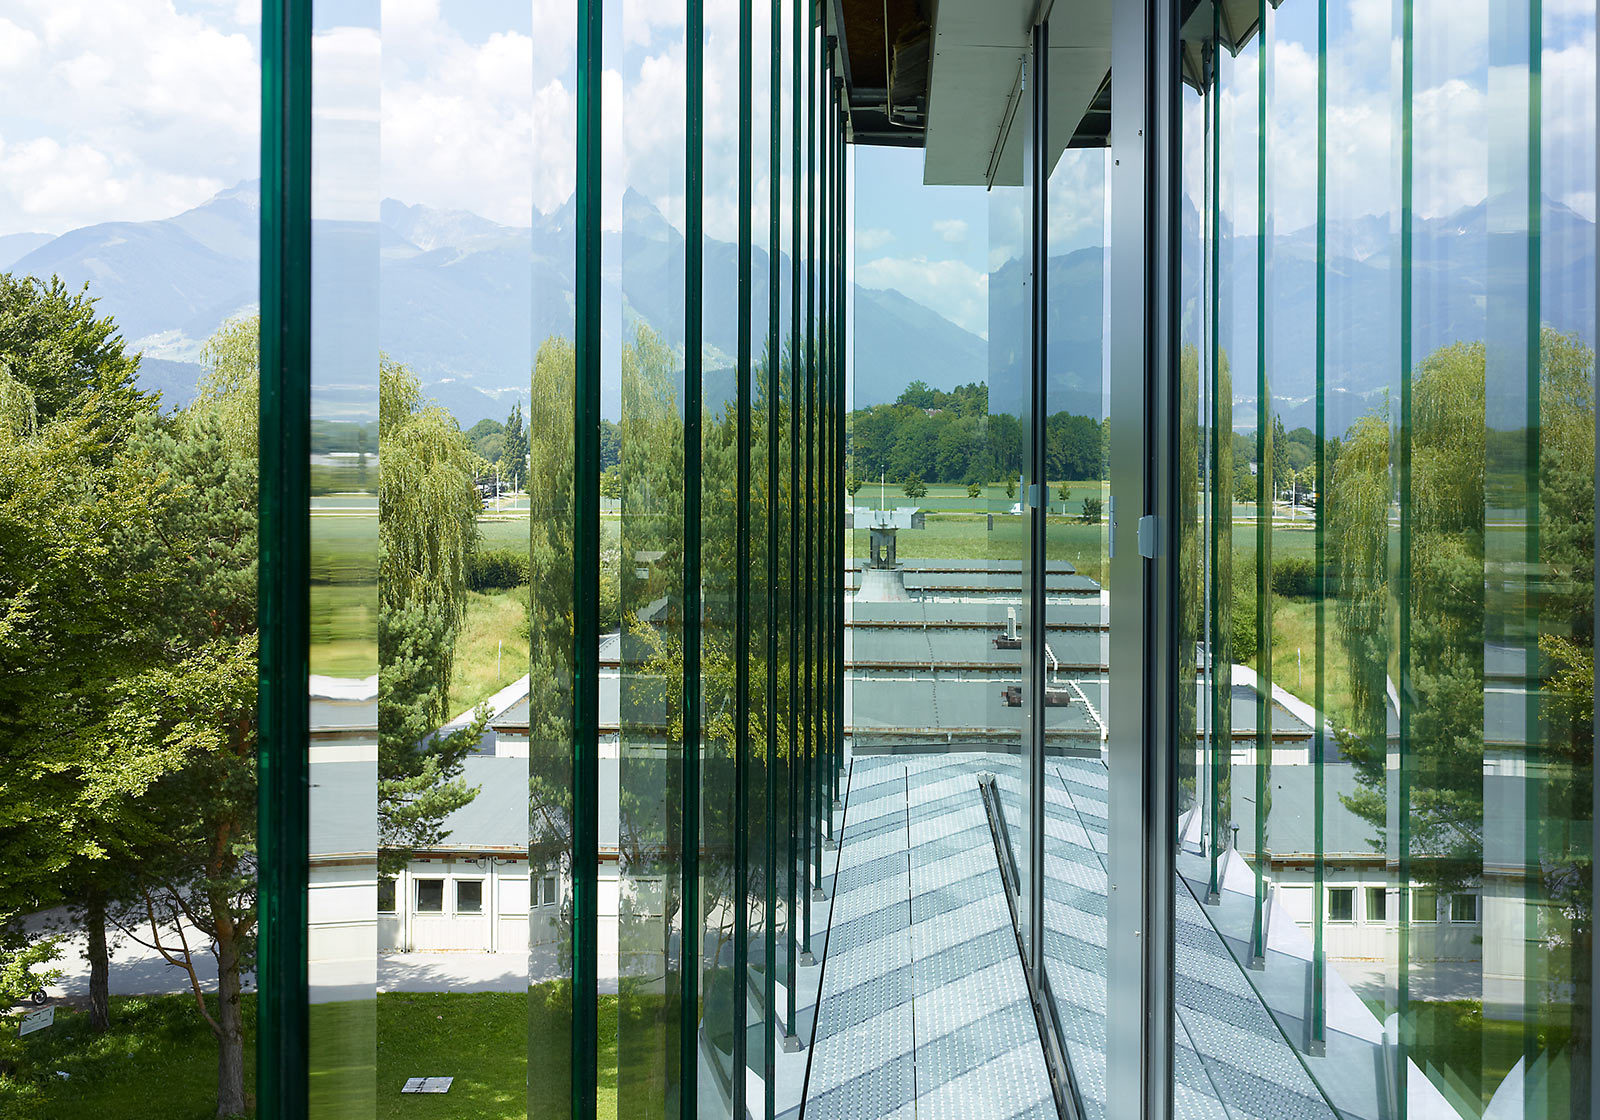 A special feature: The new façade of the architecture faculty introduces fresh air via automatic ventilating leafs. Photo: ATP/Jantscher